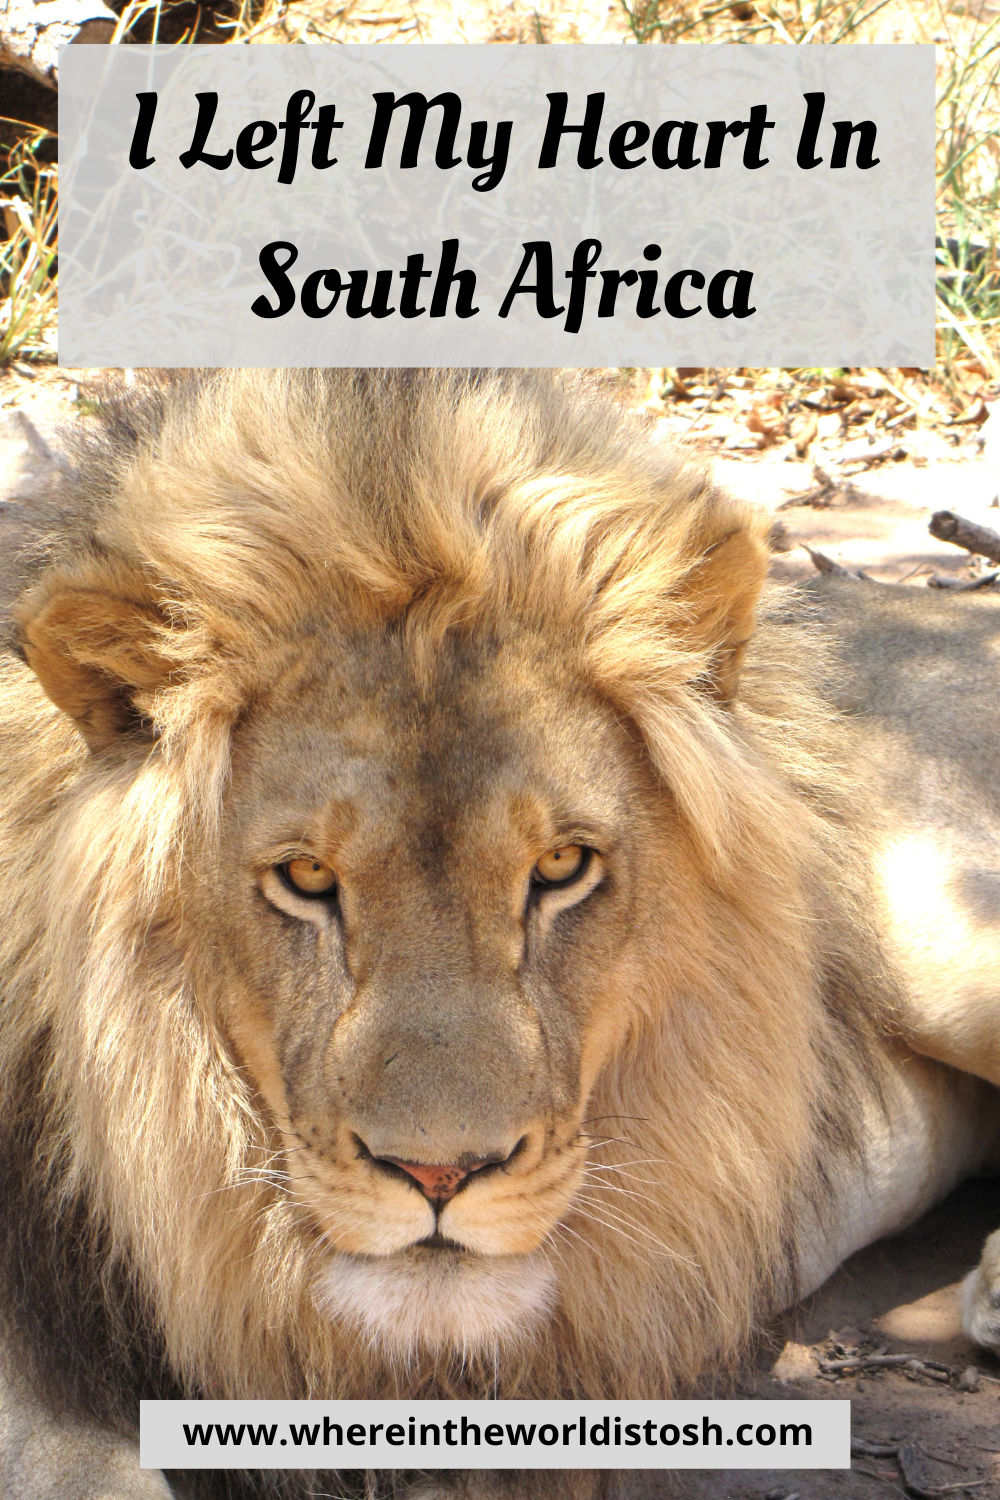 I left My Heart In South Africa